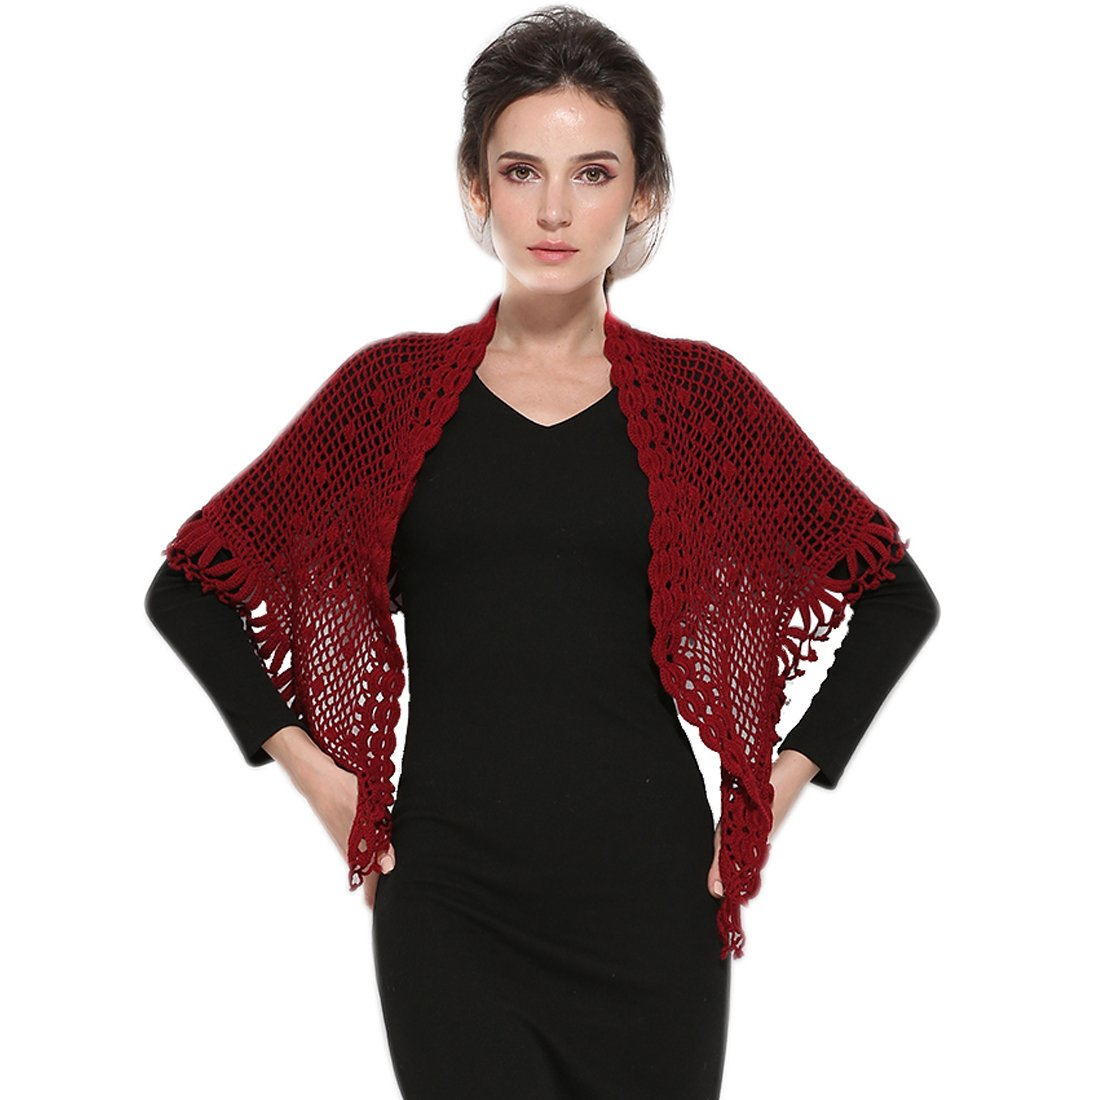 ZORJAR Scarfs for Women Winter Fashion Scarves Knitted Crochet Triangle shawls and wraps (Wine)